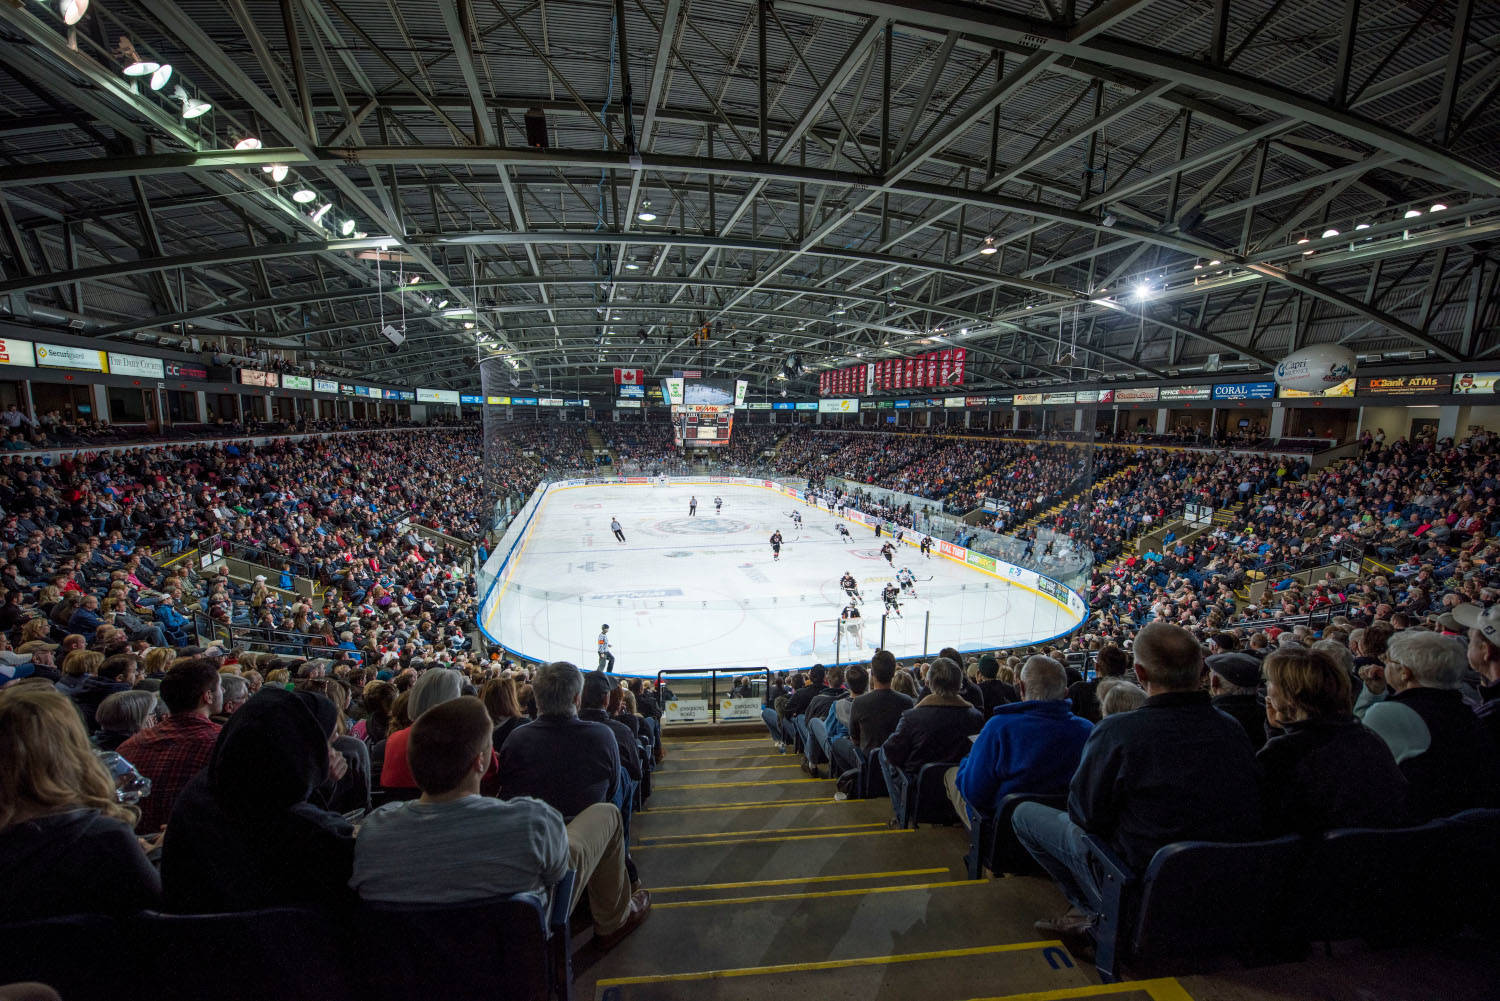 The Kelowna Rockets fill the arena against the Calgary Hitmen on February 28, 2015 at Prospera Place in Kelowna, British Columbia, Canada. (Photo by Marissa Baecker/Shoot the Breeze)